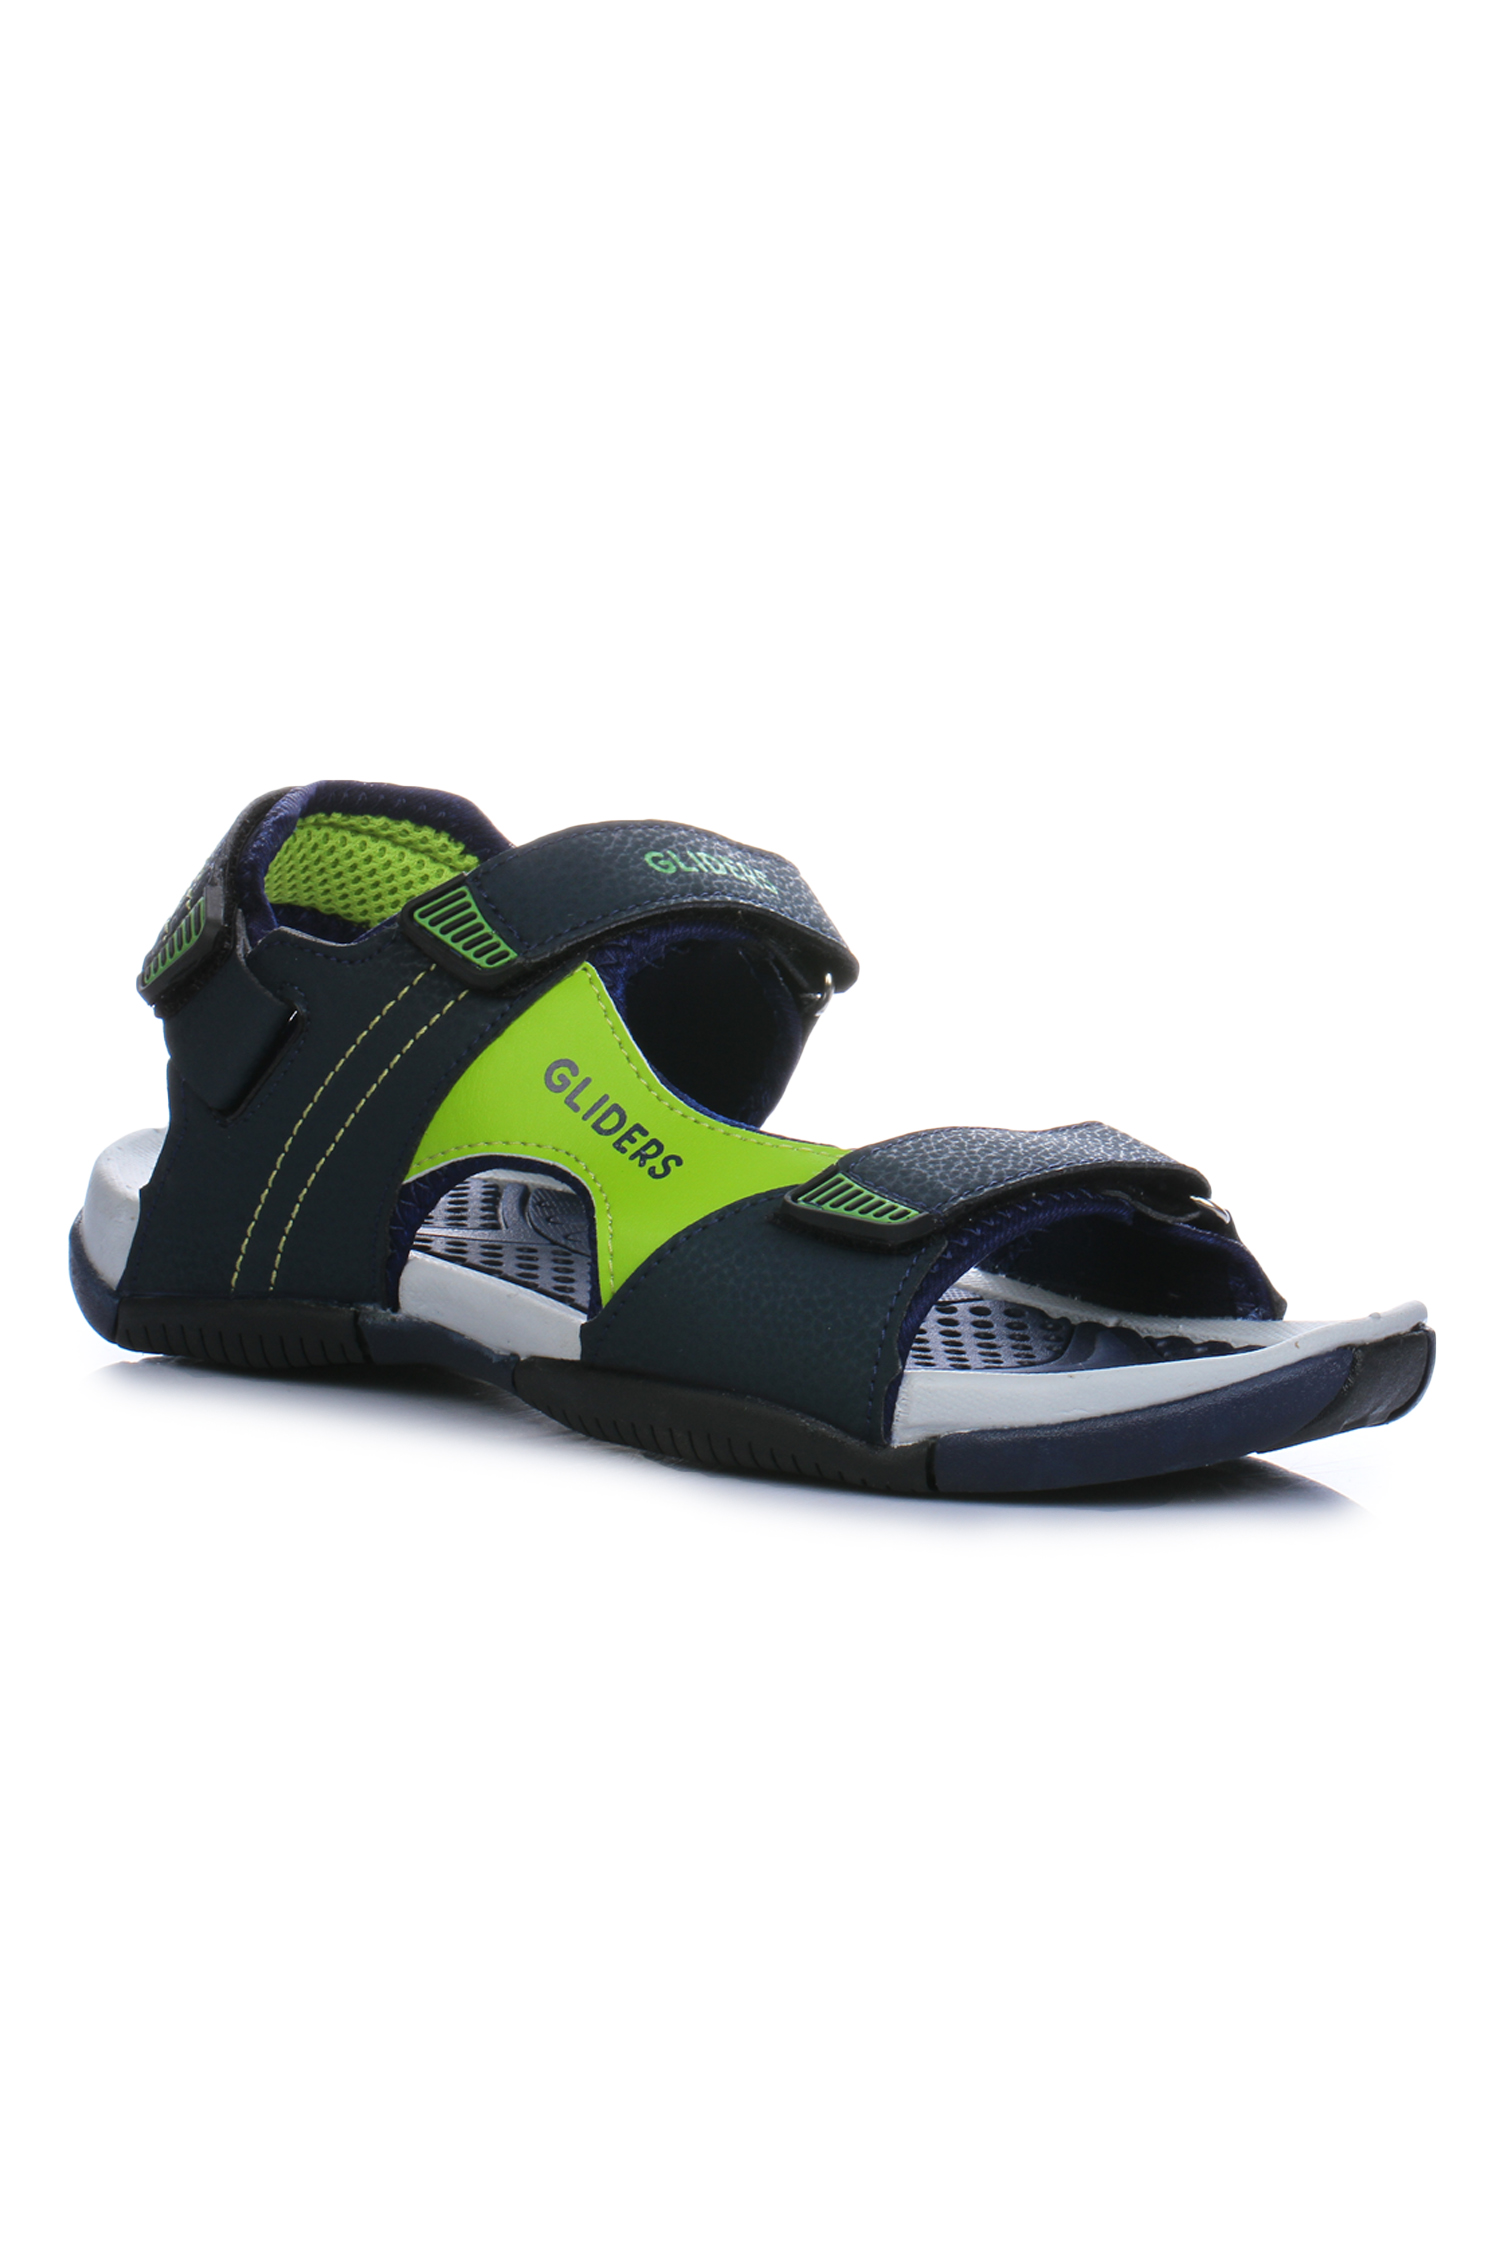 Liberty   Liberty Coolers Green Sports Sandals LXI-11_Green For - Men